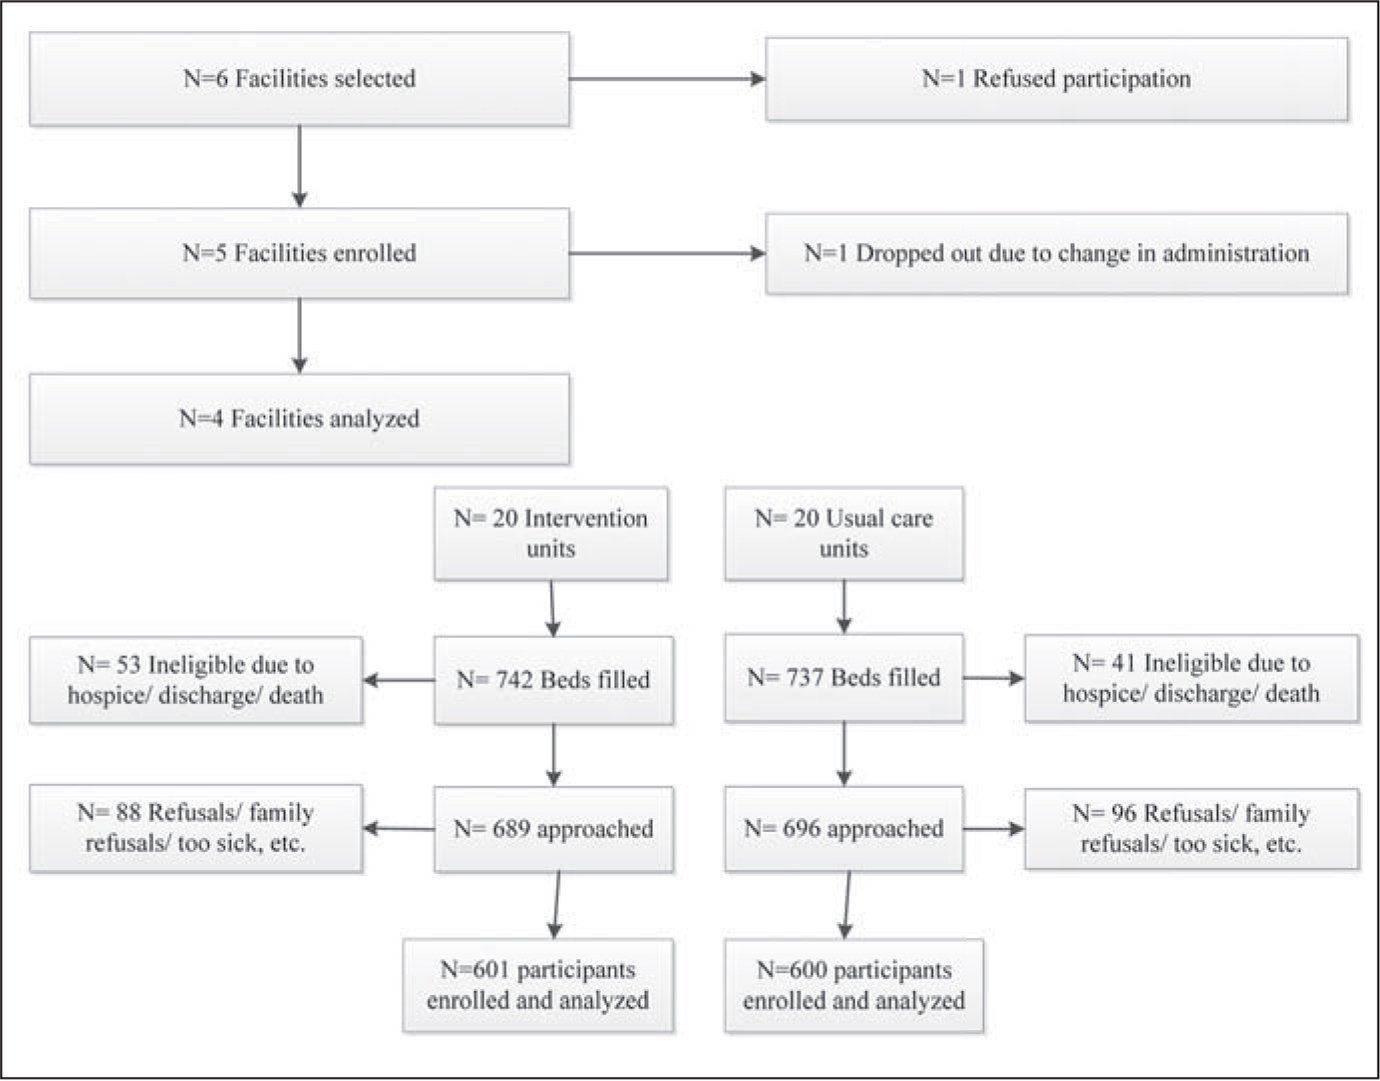 Consort diagram of recruitment and analyses of facilities and residents.